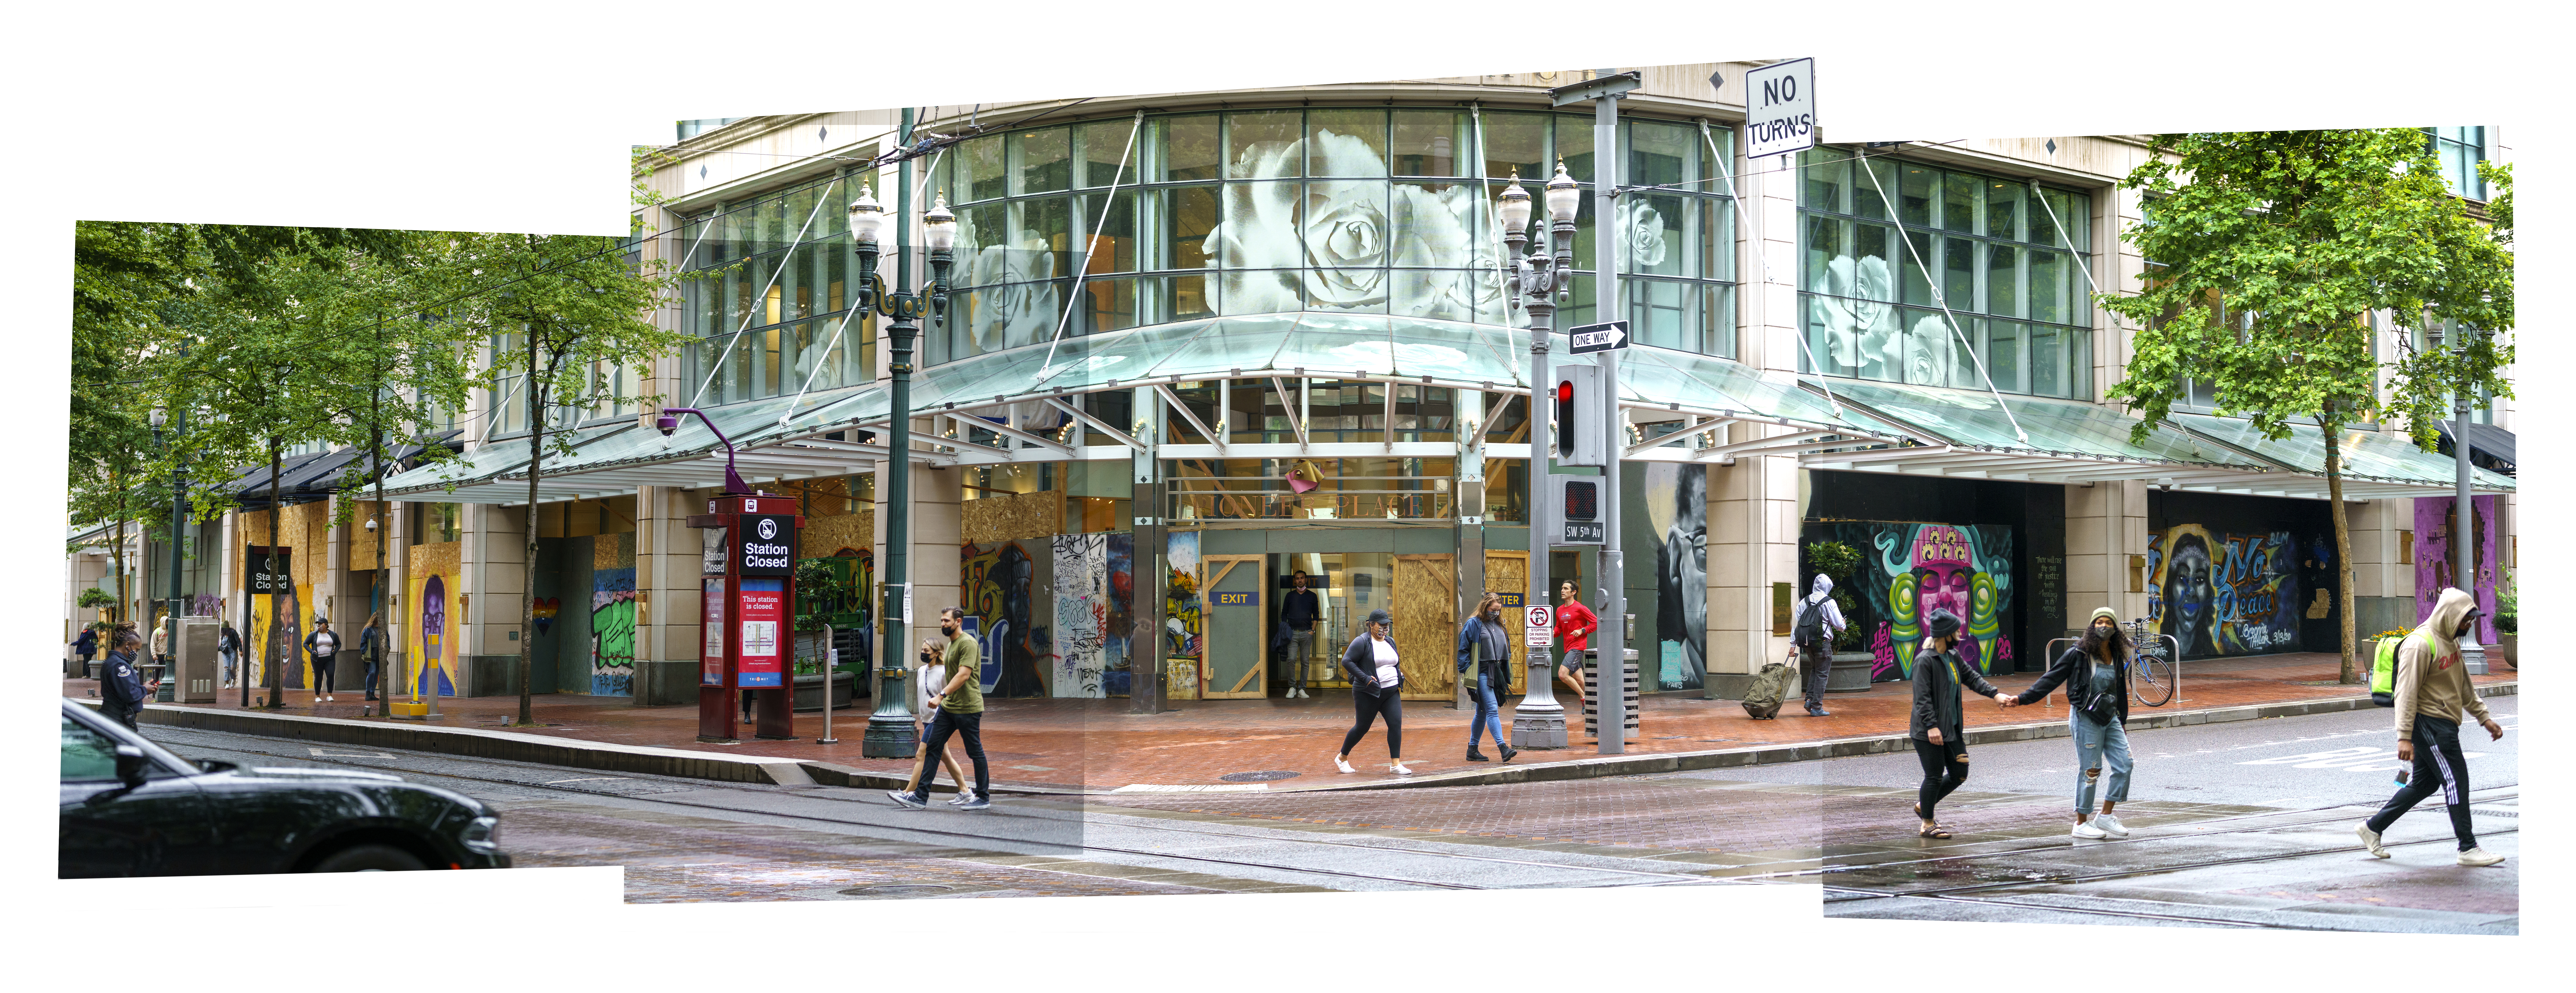 The past year has been rough for downtown Portland, where impacts from the pandemic, regular protests, vandalism and boarded storefronts are visible throughout the area. These signs are seen in this photo composite showing a block on SW 5th Ave, as well as signs of recovery, such as an increase in foot traffic at Pioneer Place mall.